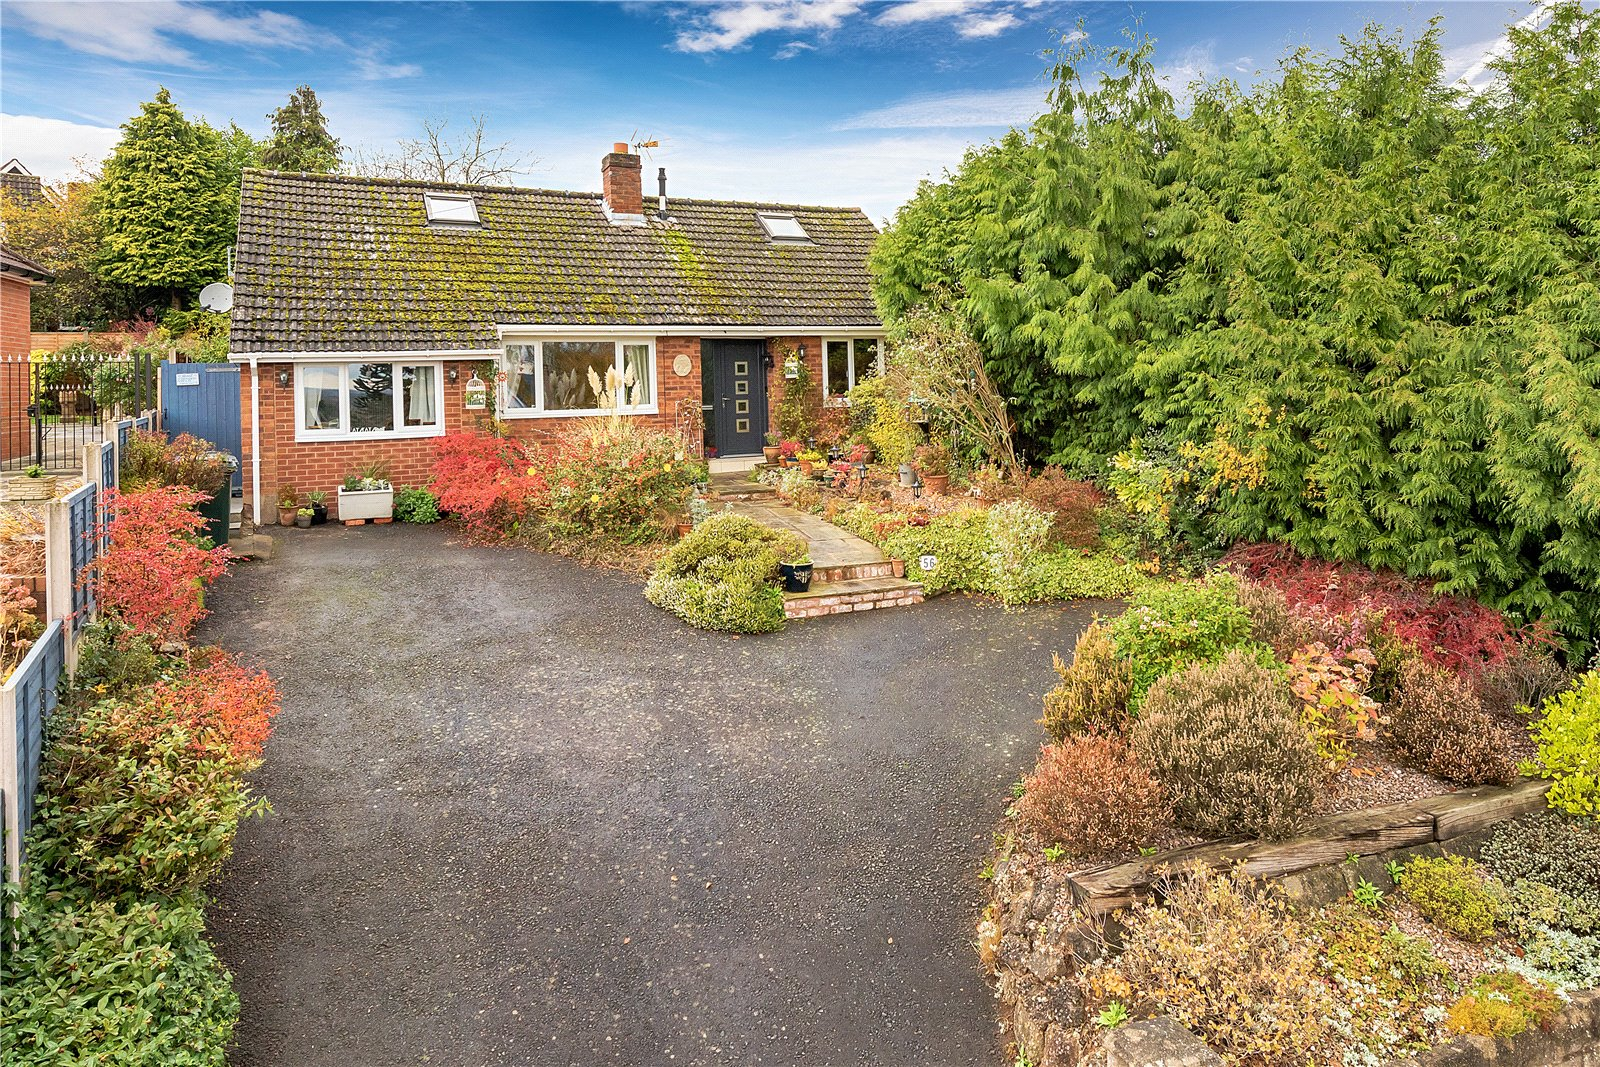 4 Bedrooms Detached Bungalow for sale in 56 Conduit Lane, Bridgnorth, Shropshire, WV16